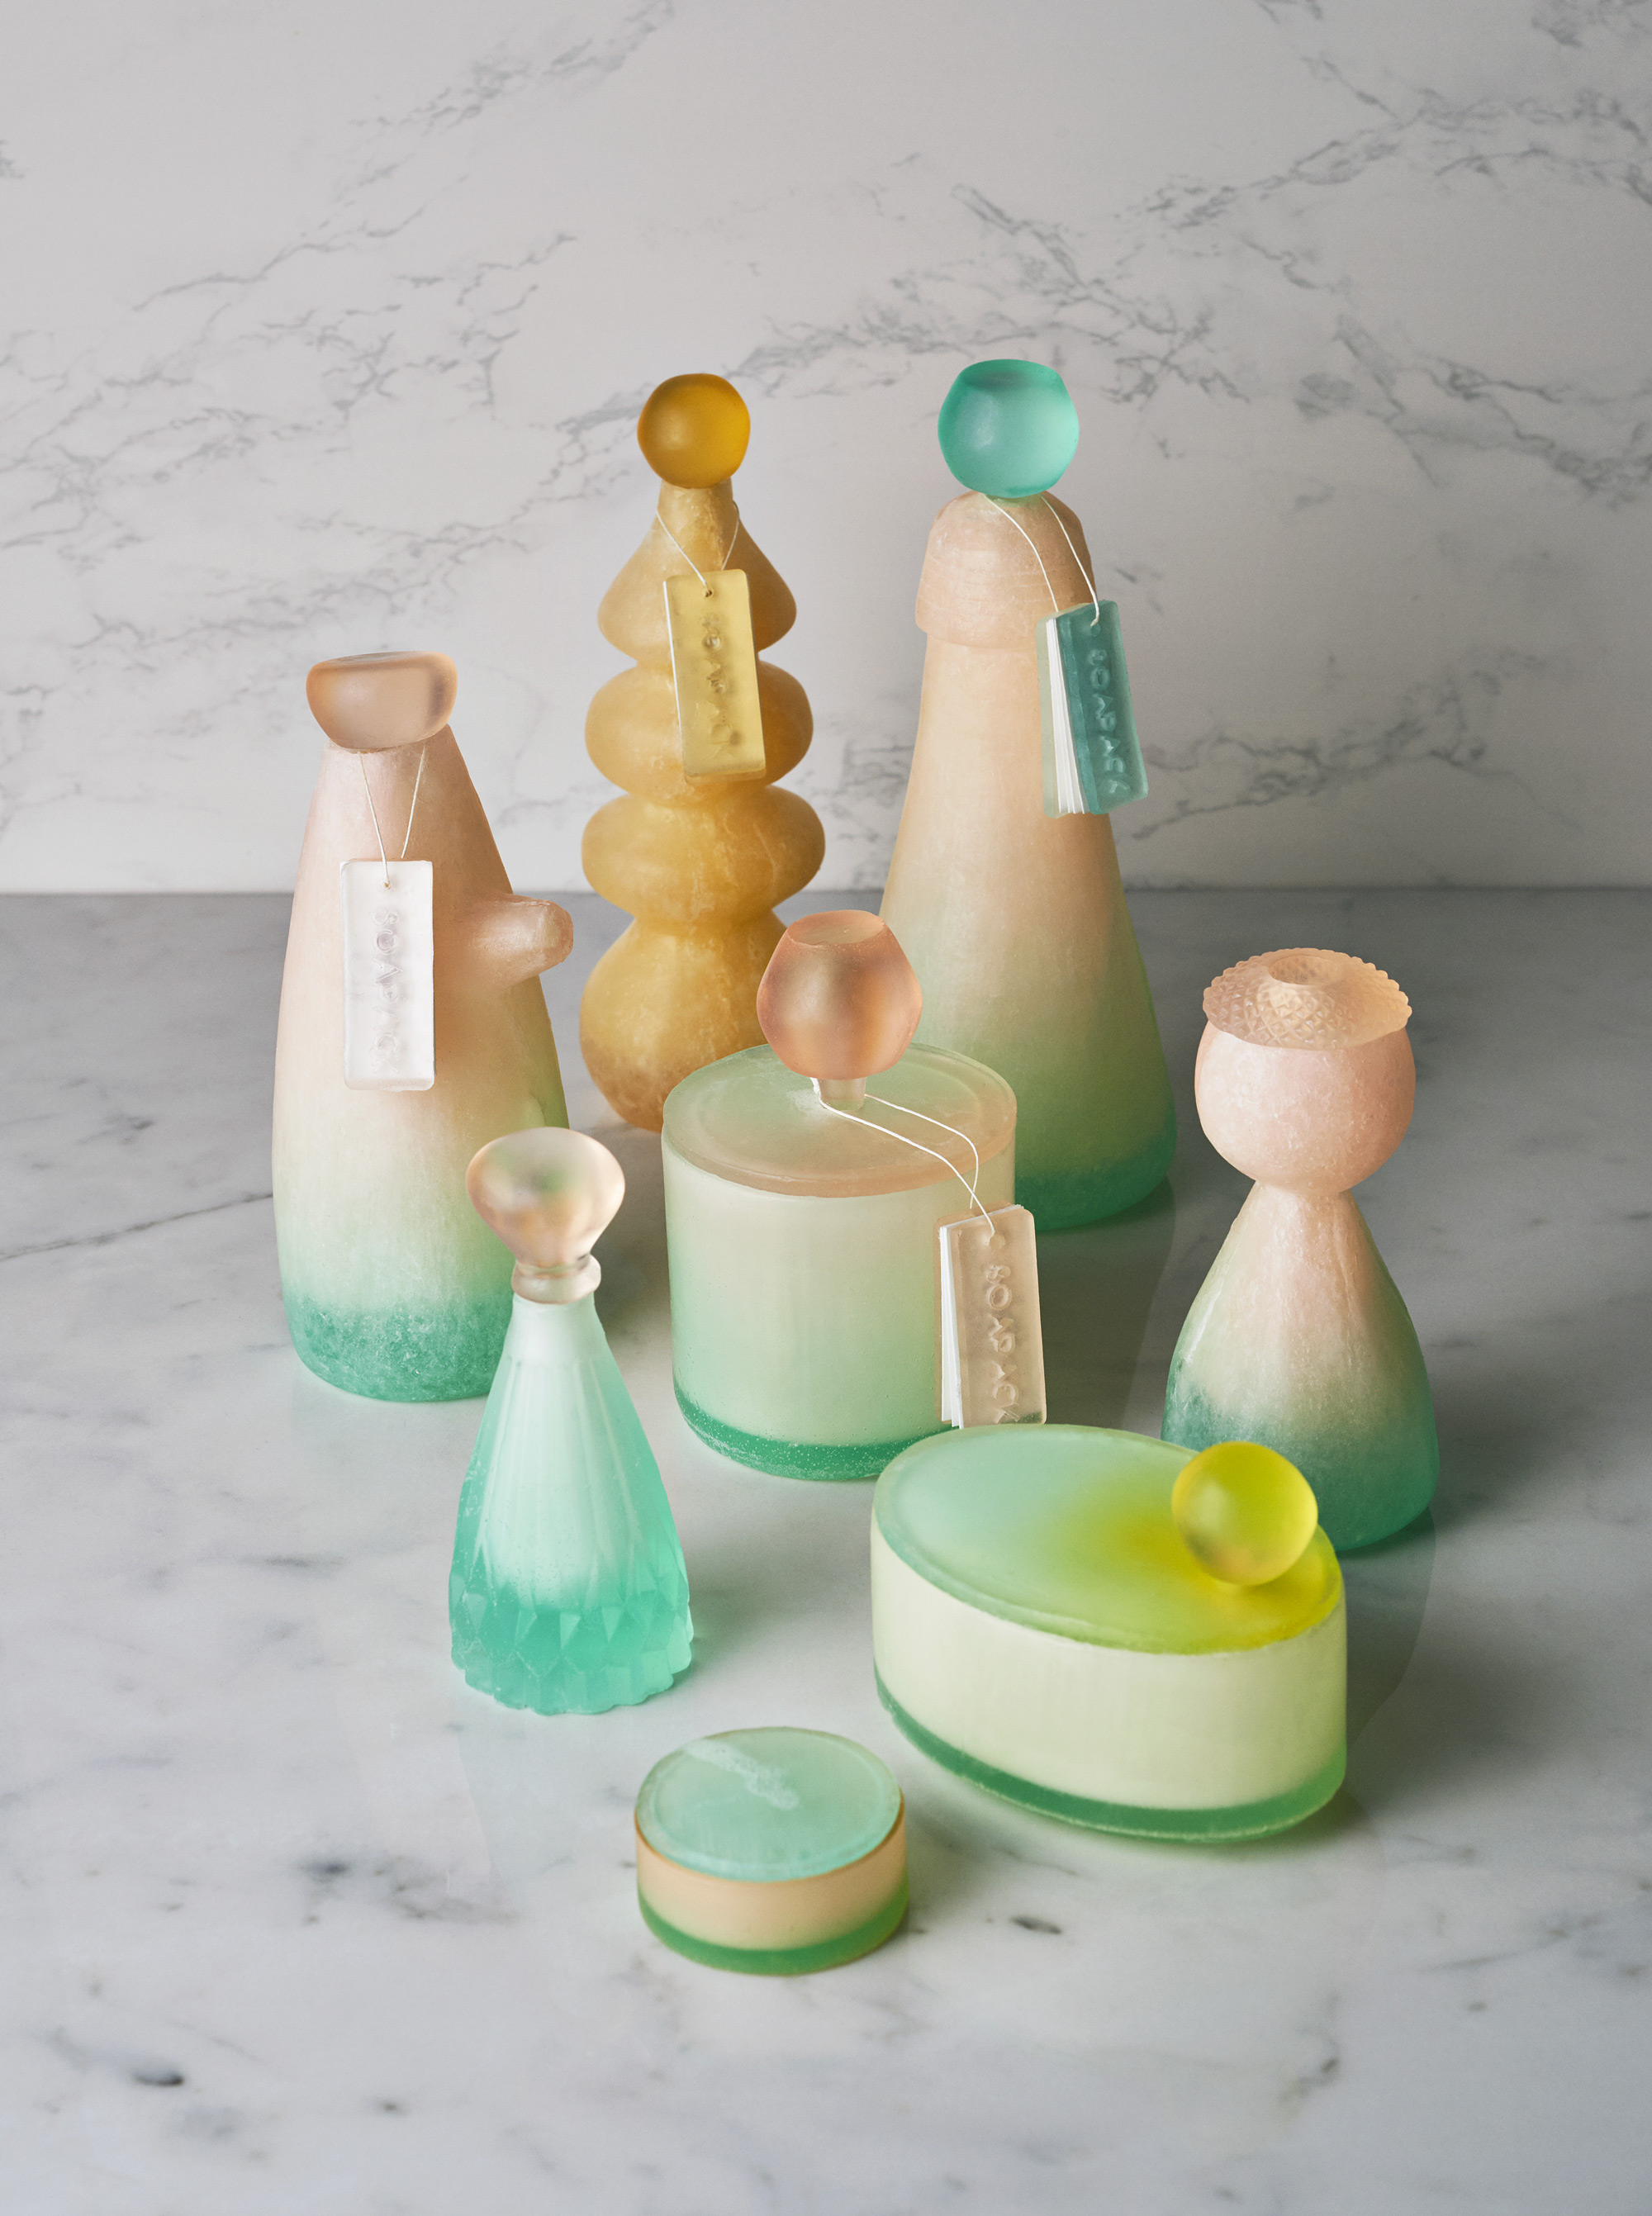 Bottles and Jars Made of Soap Replace Disposable Plastic Packaging | Colossal